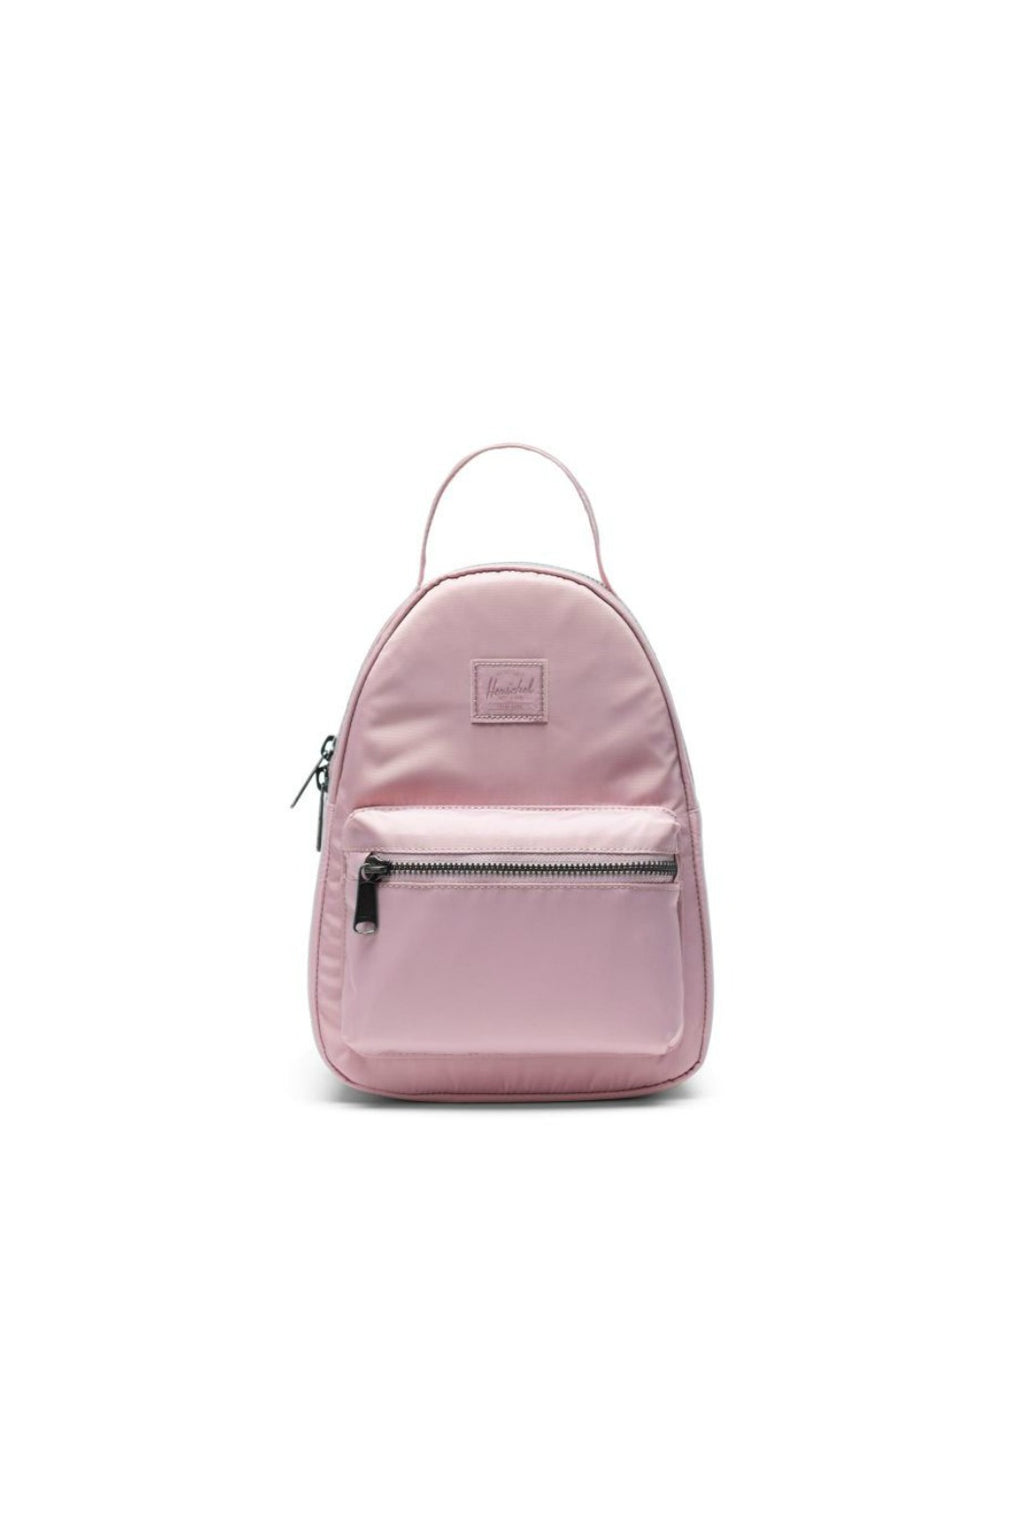 Herschel Supply Co. Nova Mini Satin Backpack - Pale Mauve